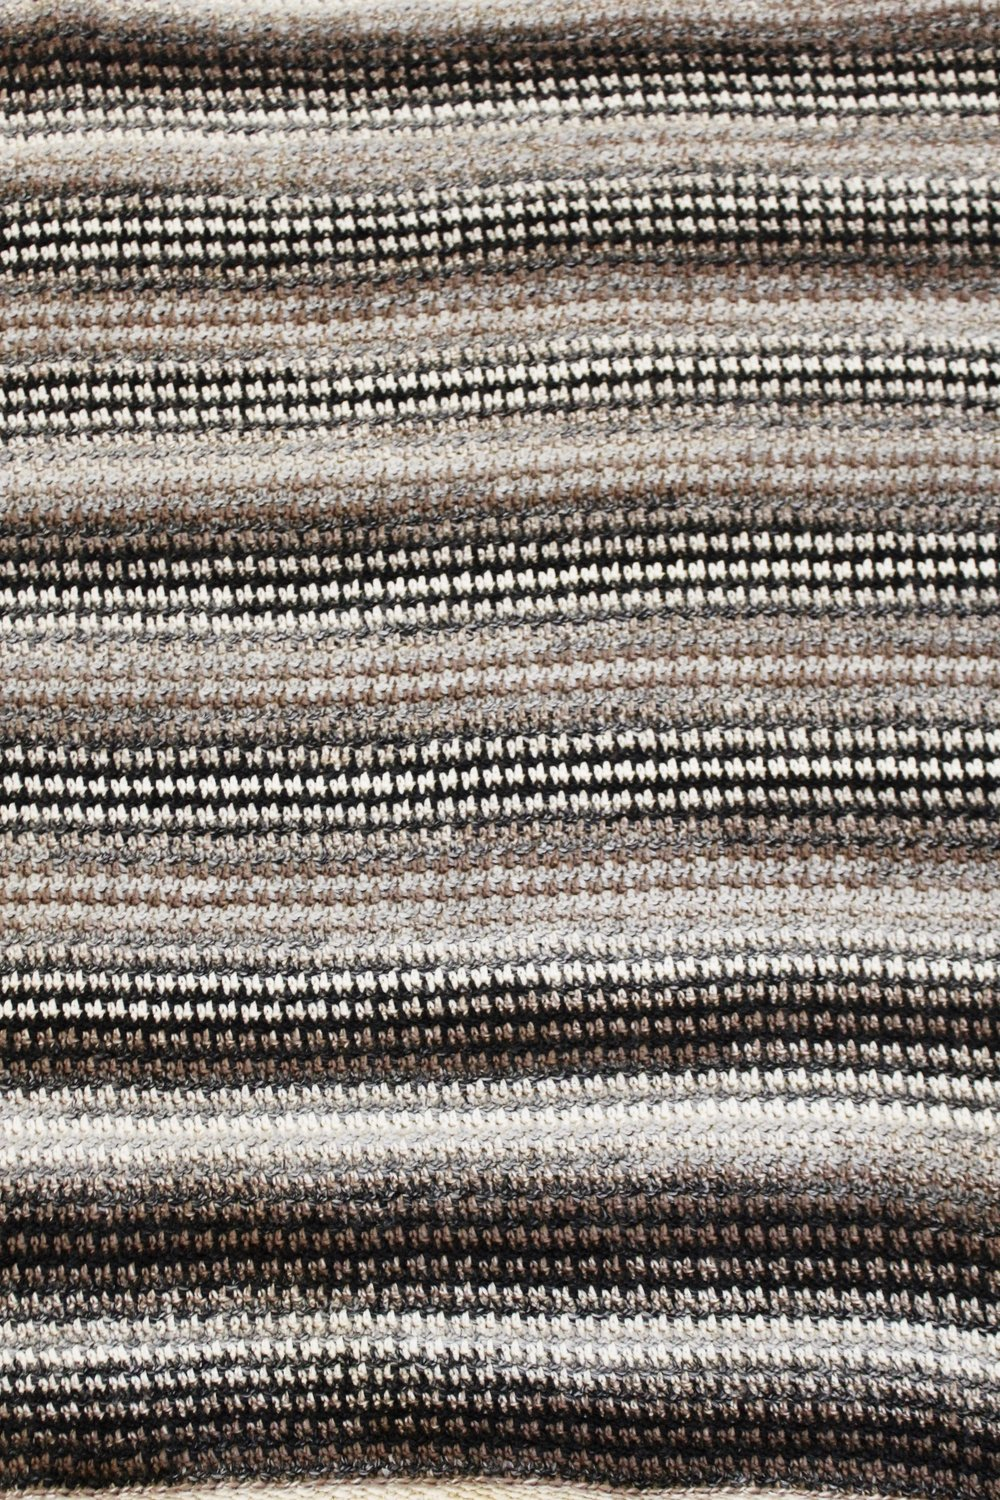 Houndstooth Cabin Throw pattern by Two of Wands